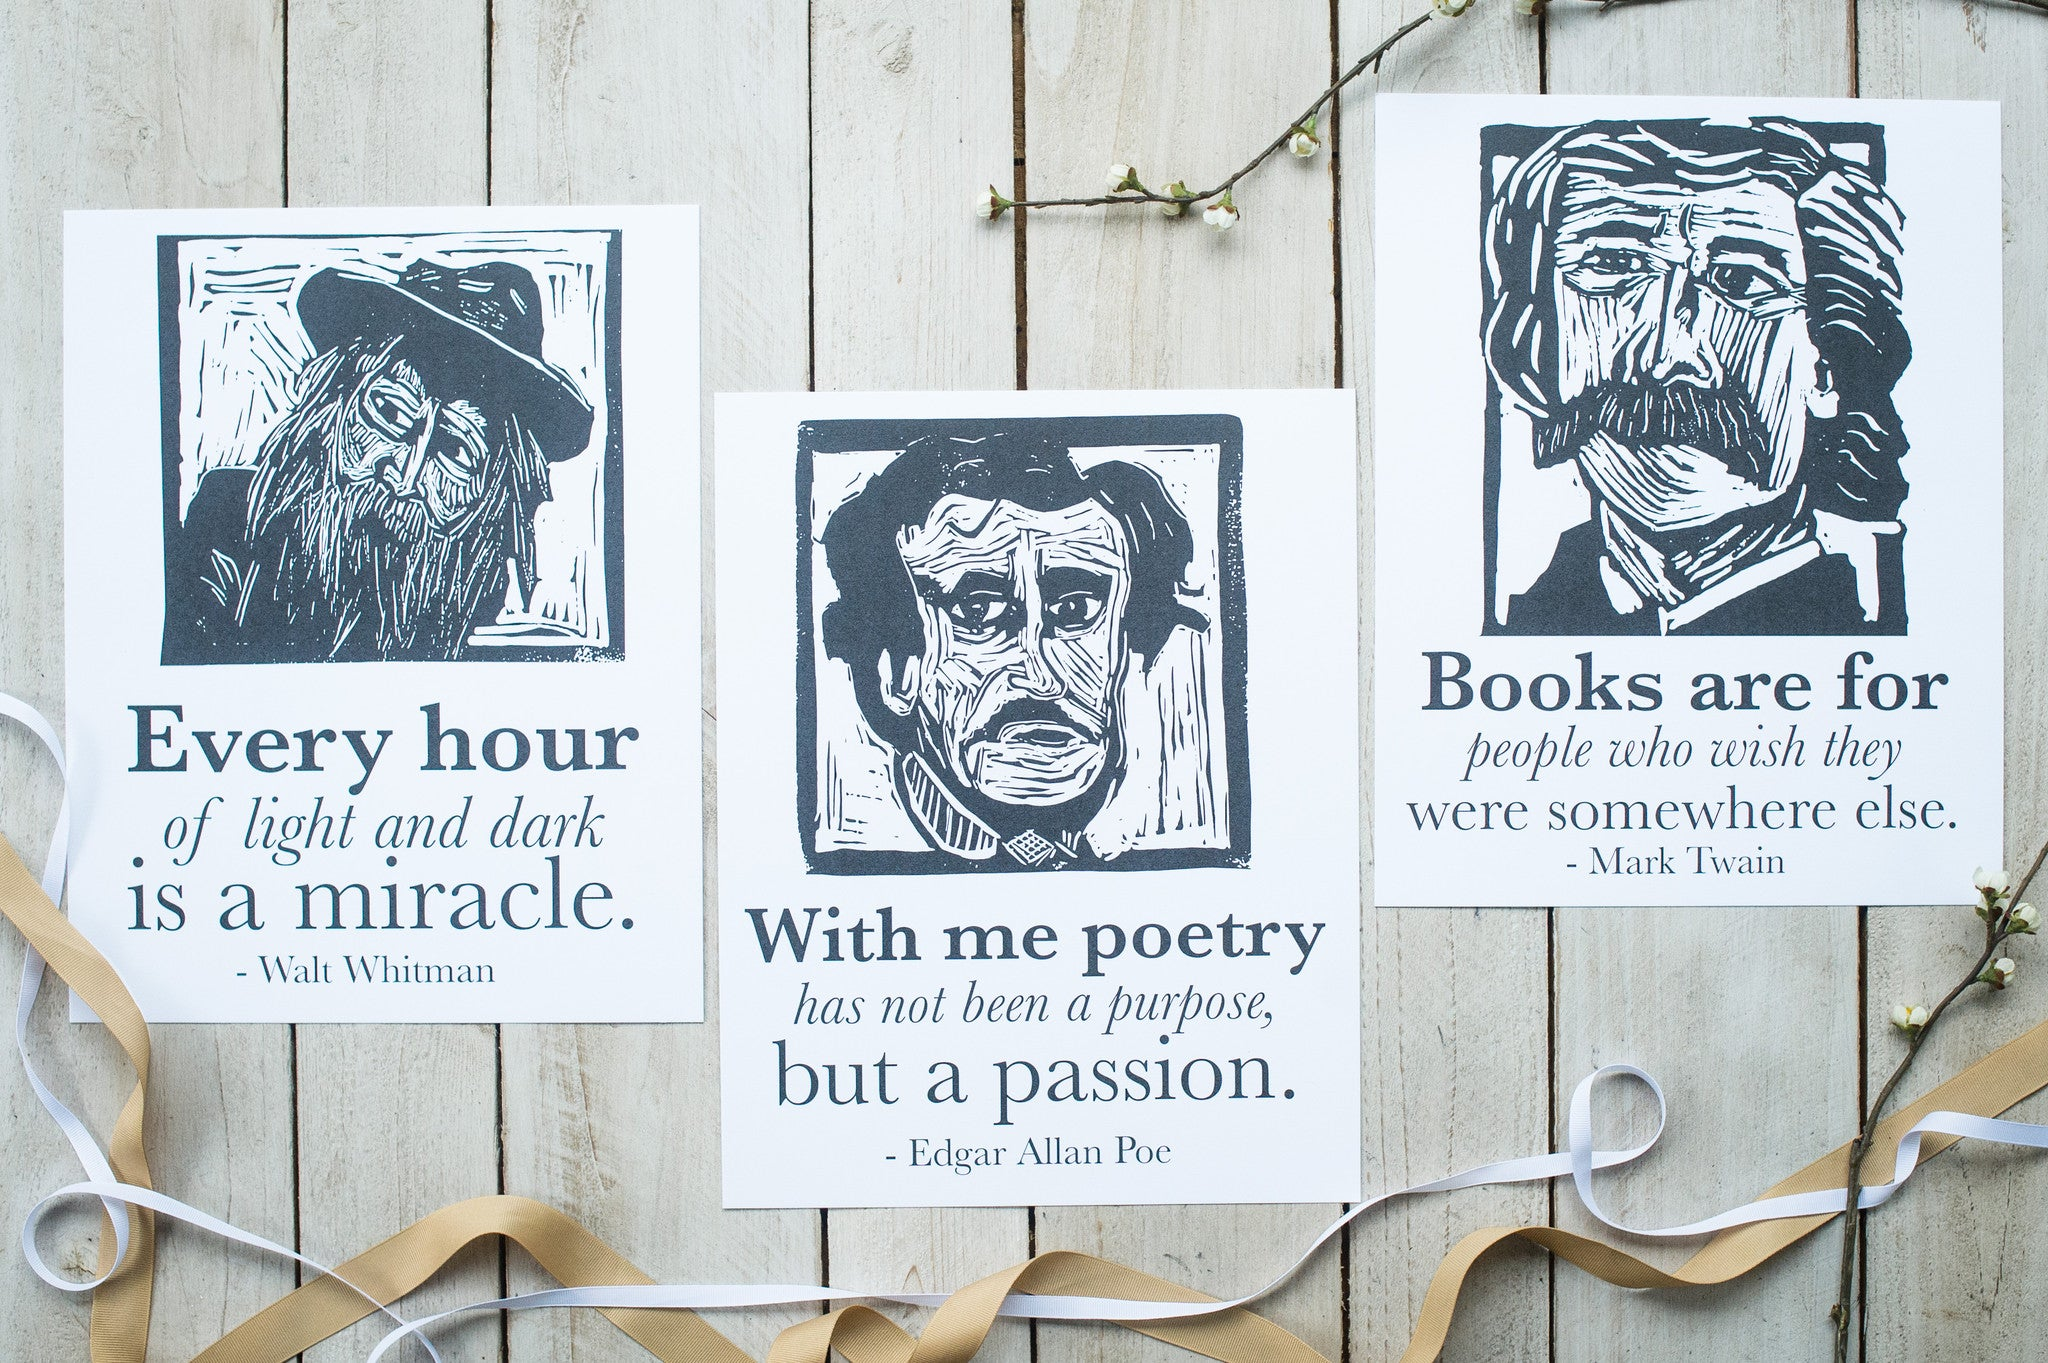 Art print poster set with Walt Whitman, Edgar Allan Poe, and Mark Twain literary gifts by Eastgrove Studio